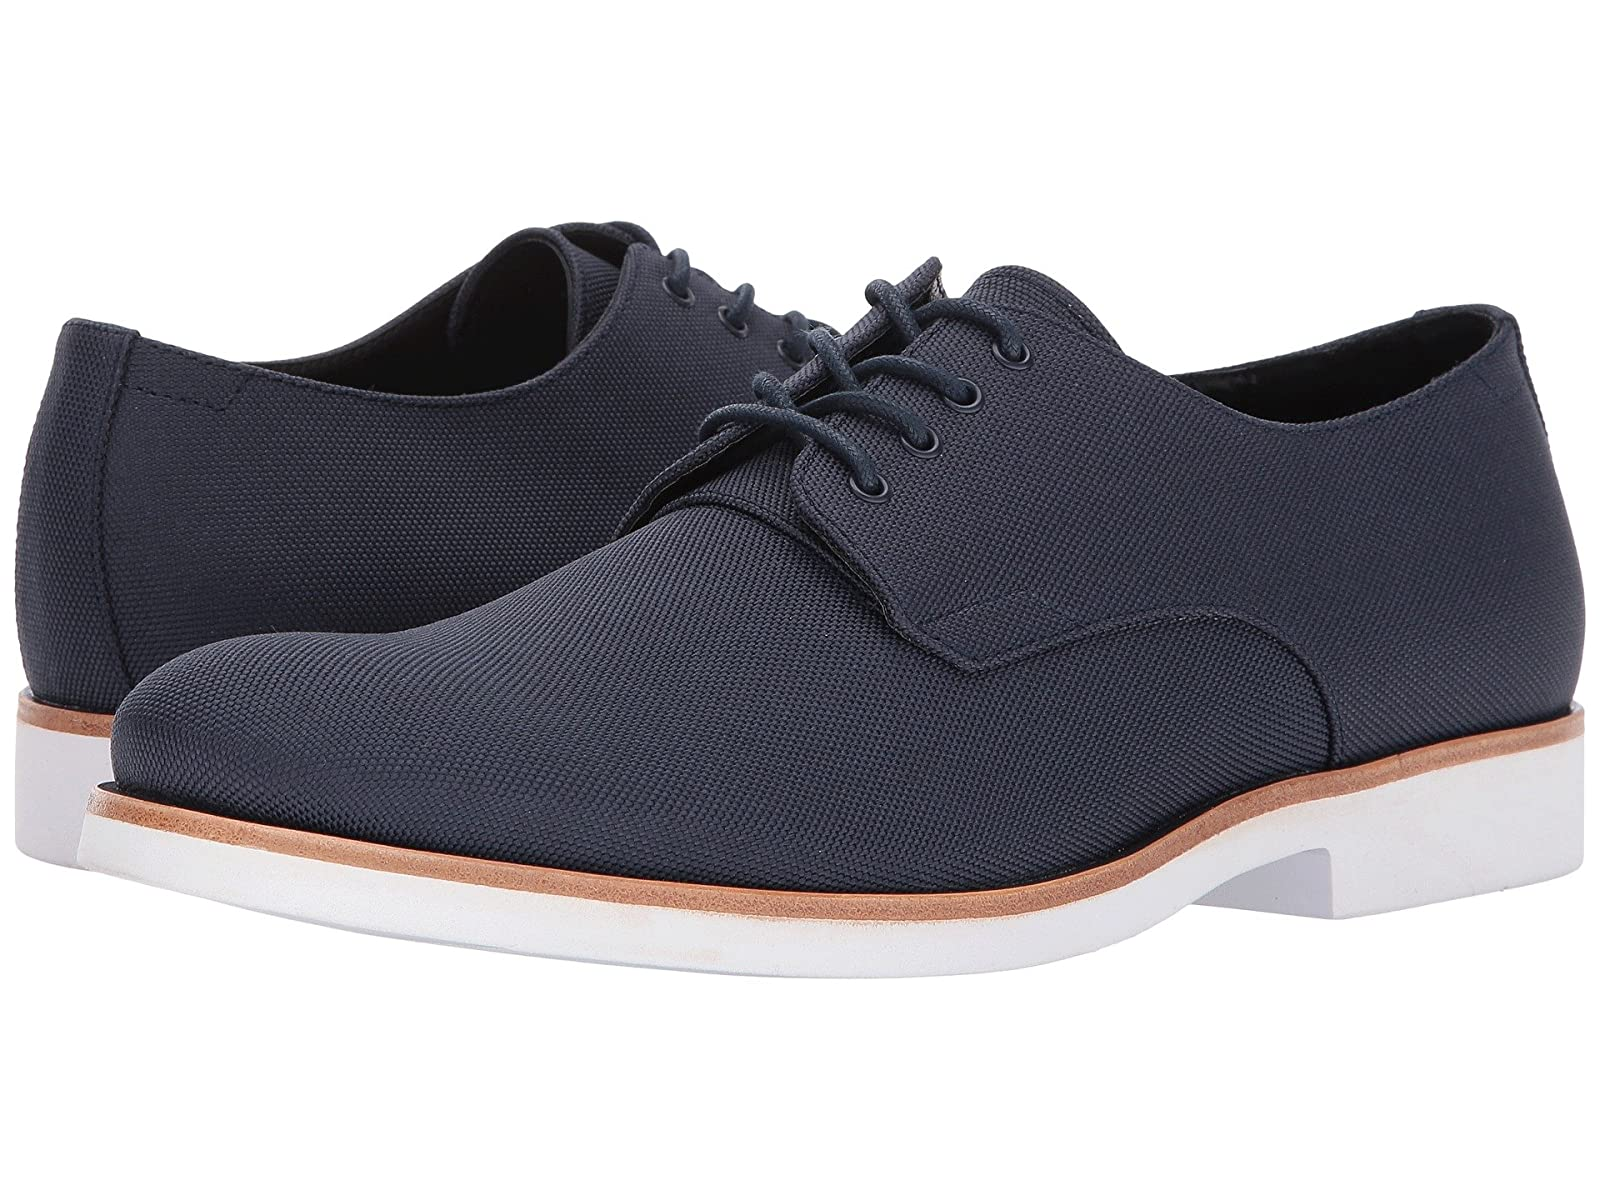 Calvin Klein FaustinoCheap and distinctive eye-catching shoes